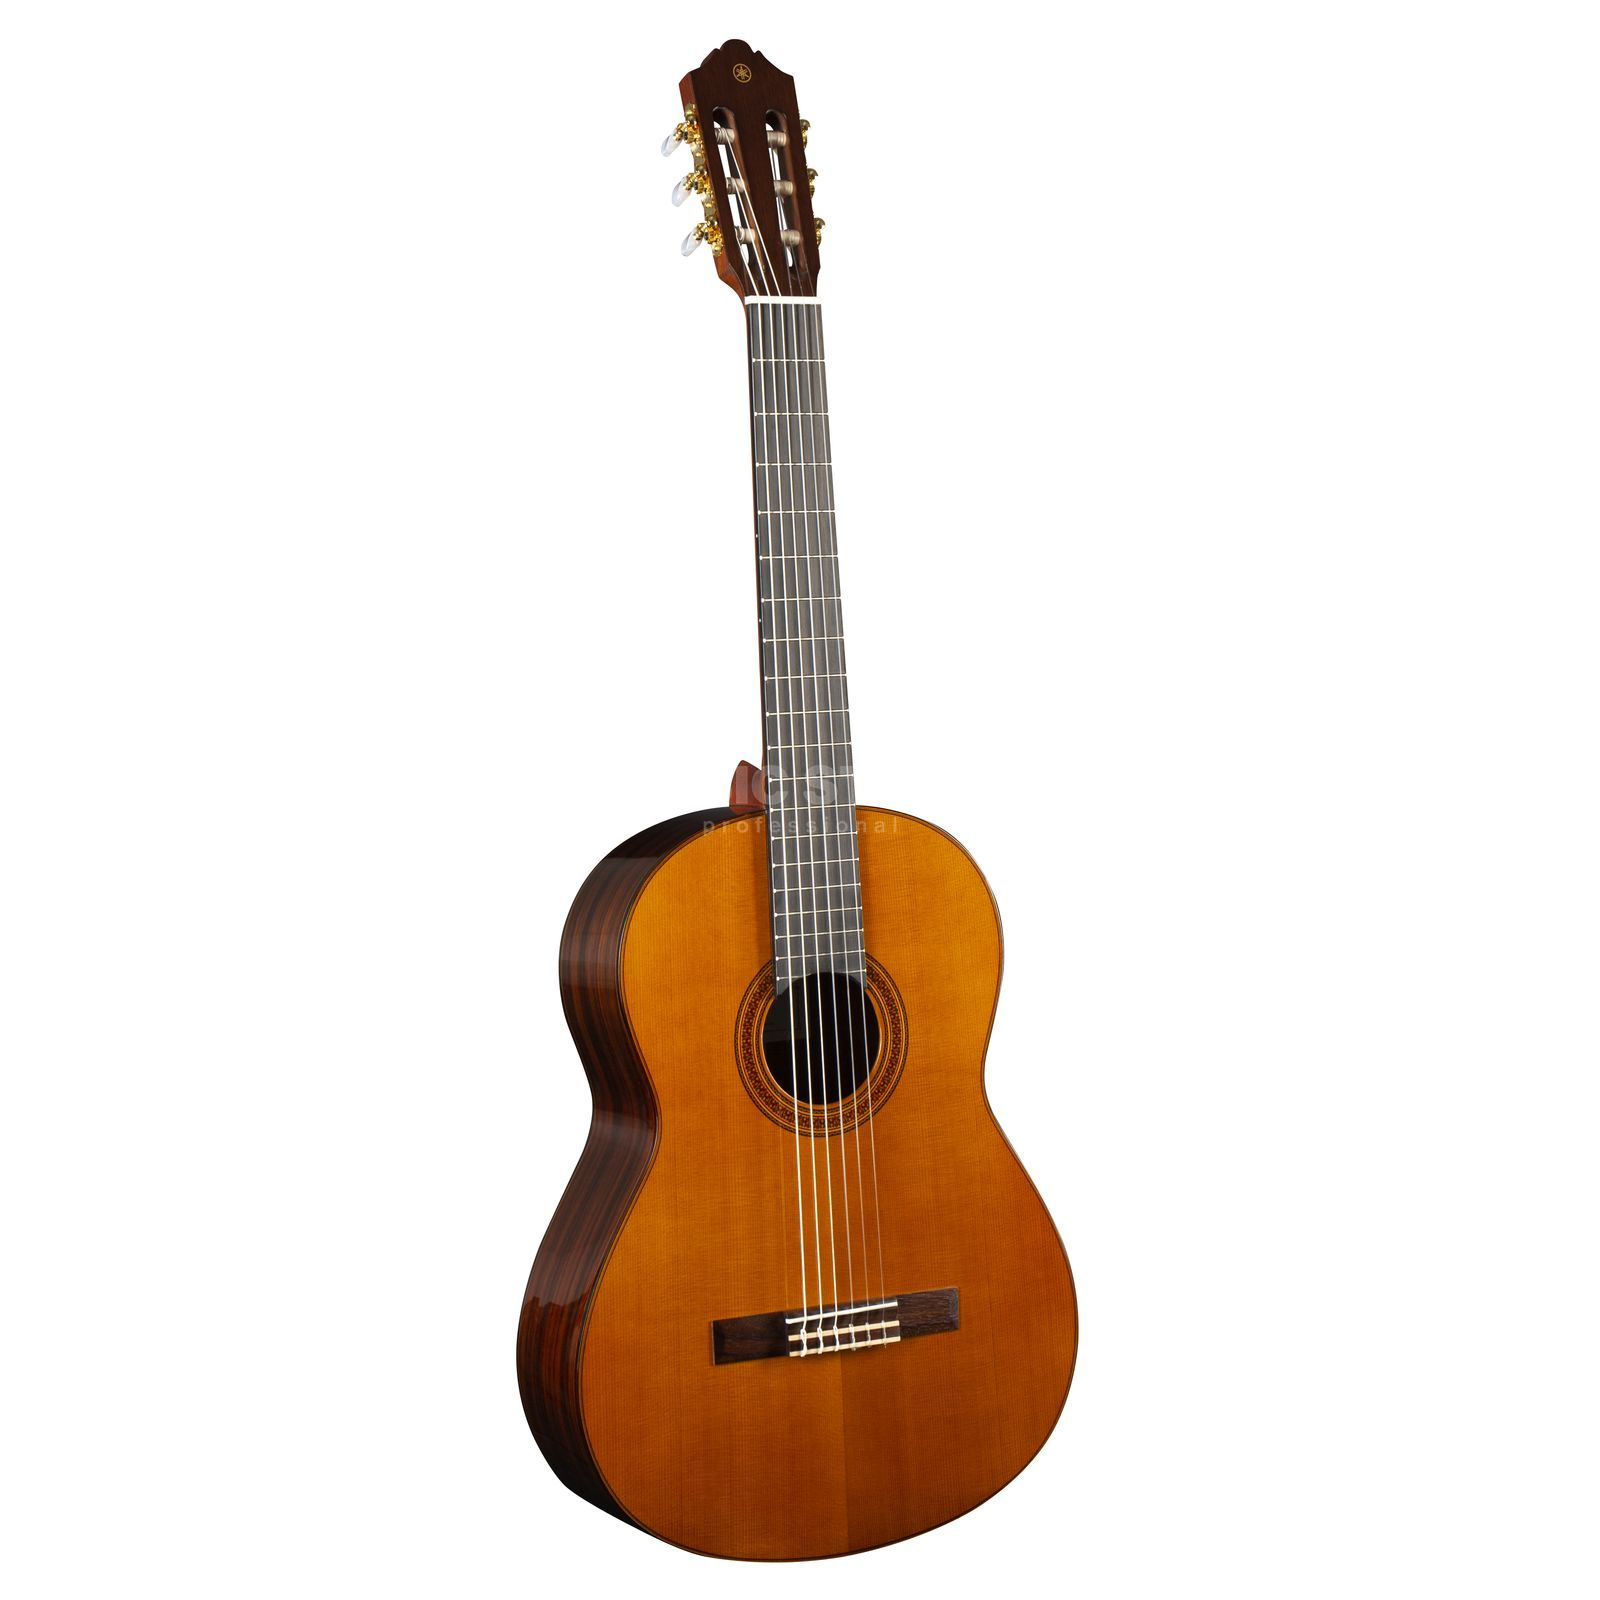 Yamaha CG182 Classical Acoustic Guita r, Natural   Produktbillede